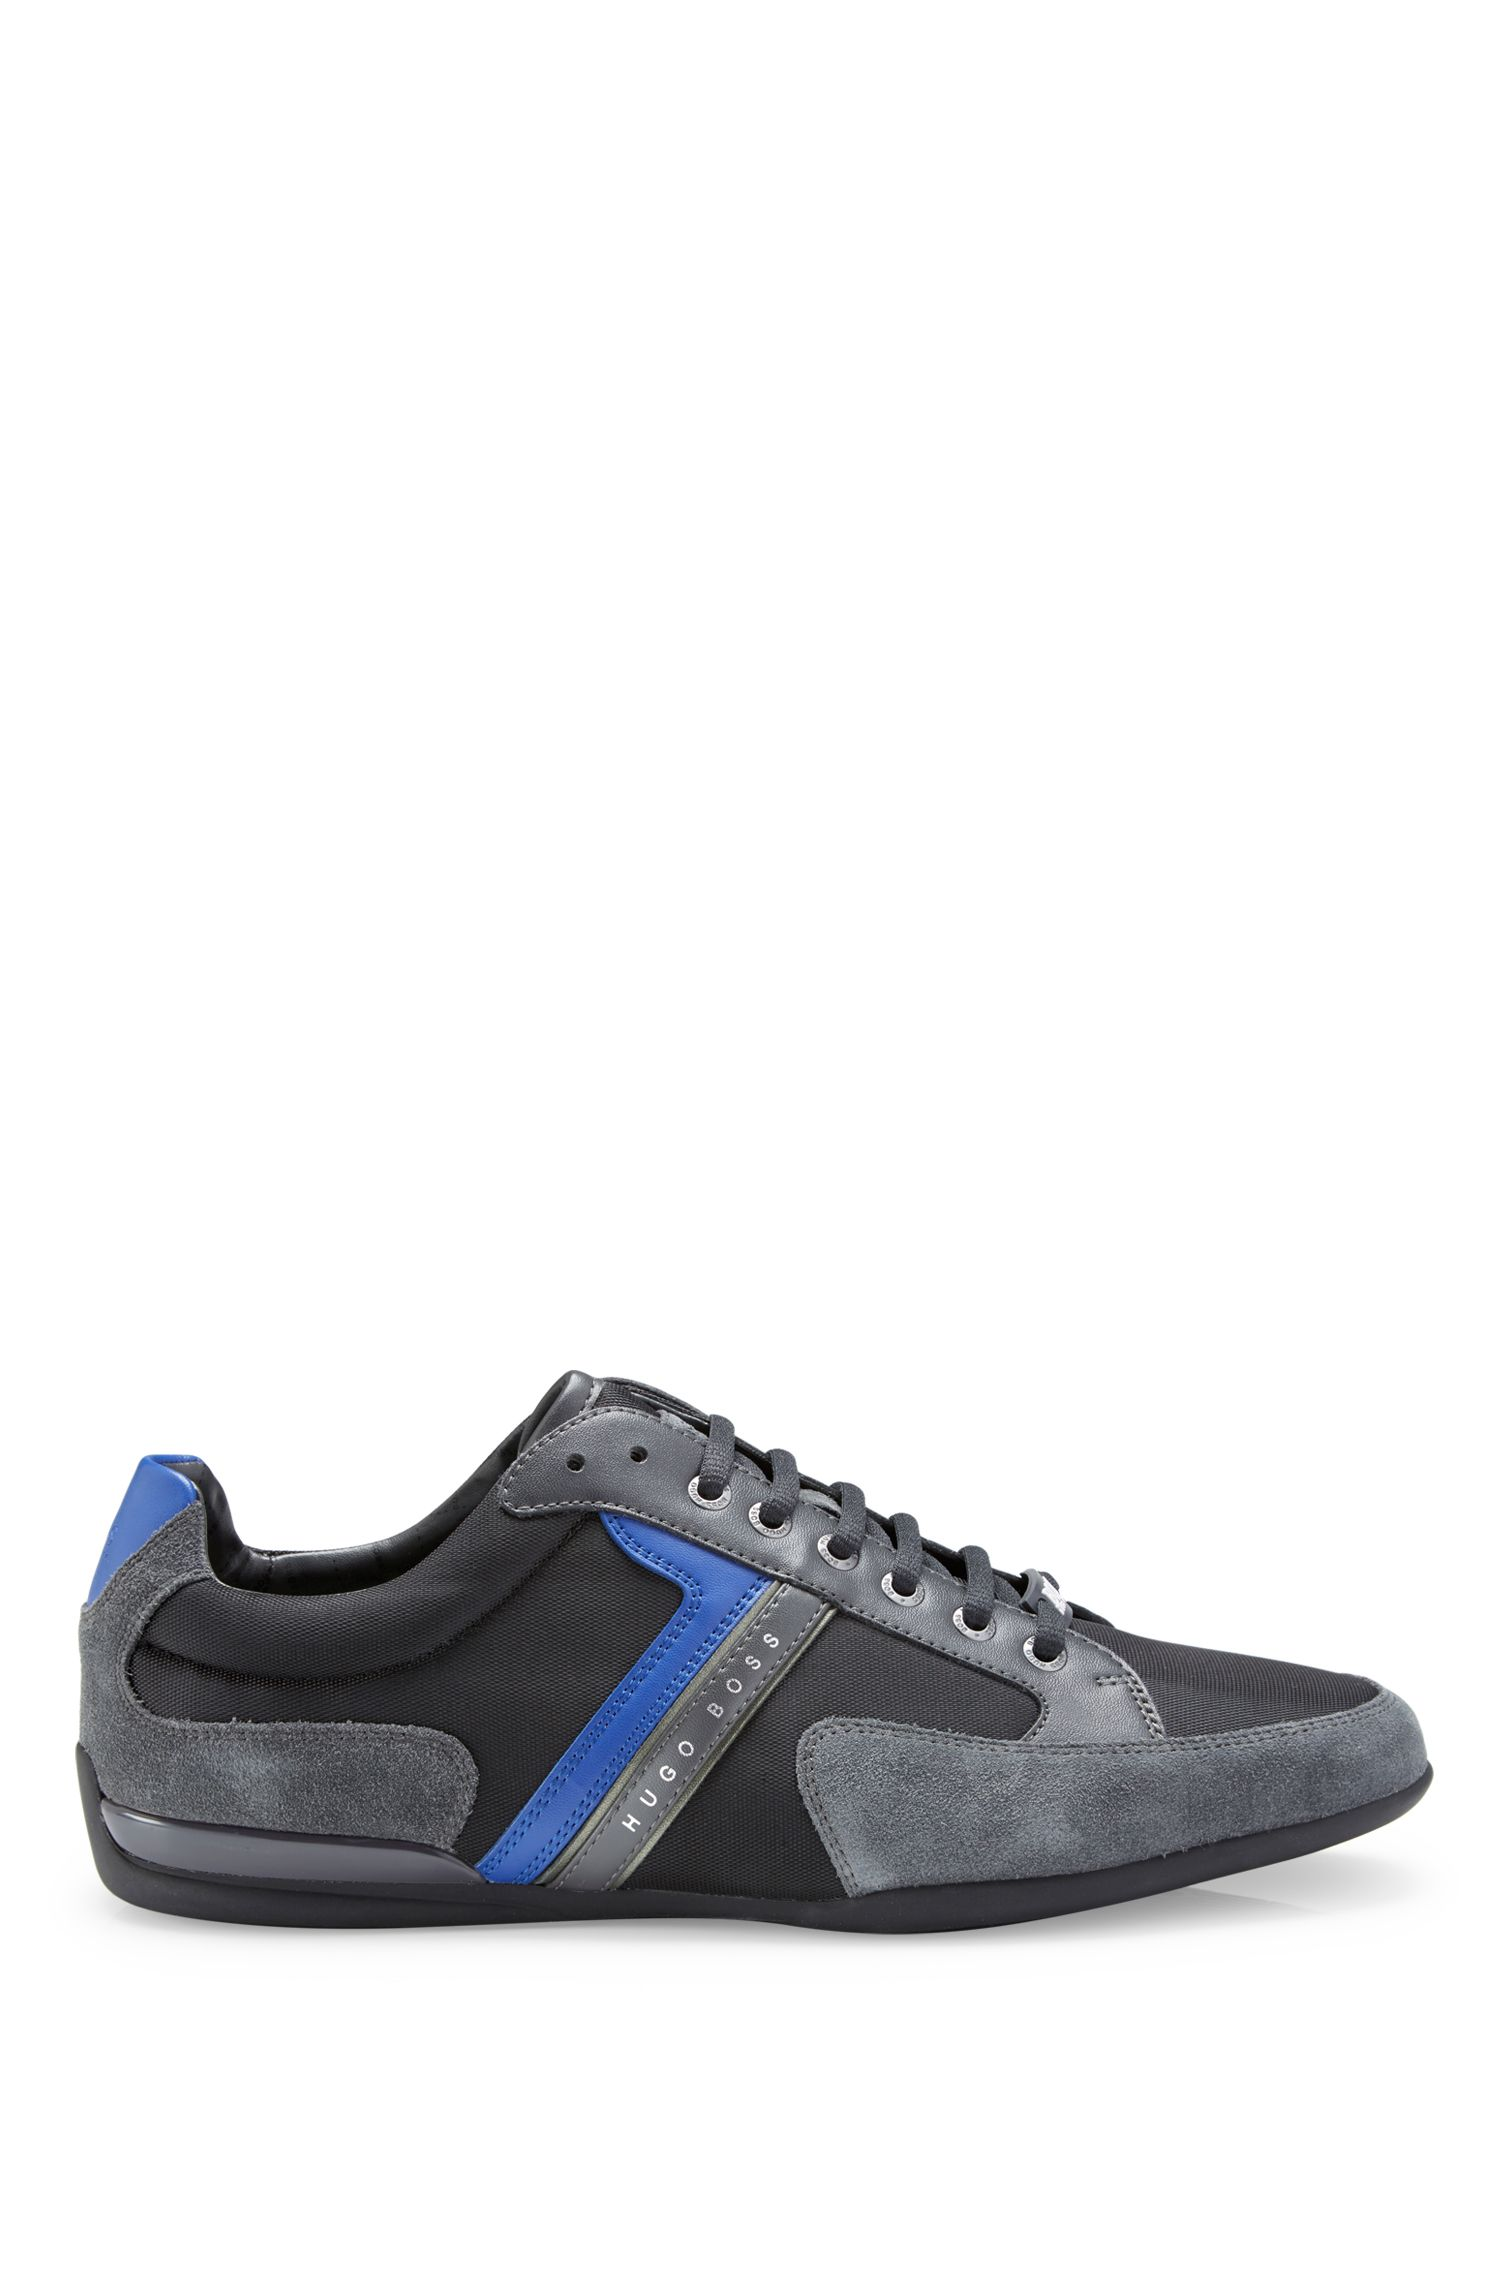 Leather and Suede Sneaker | Spacit